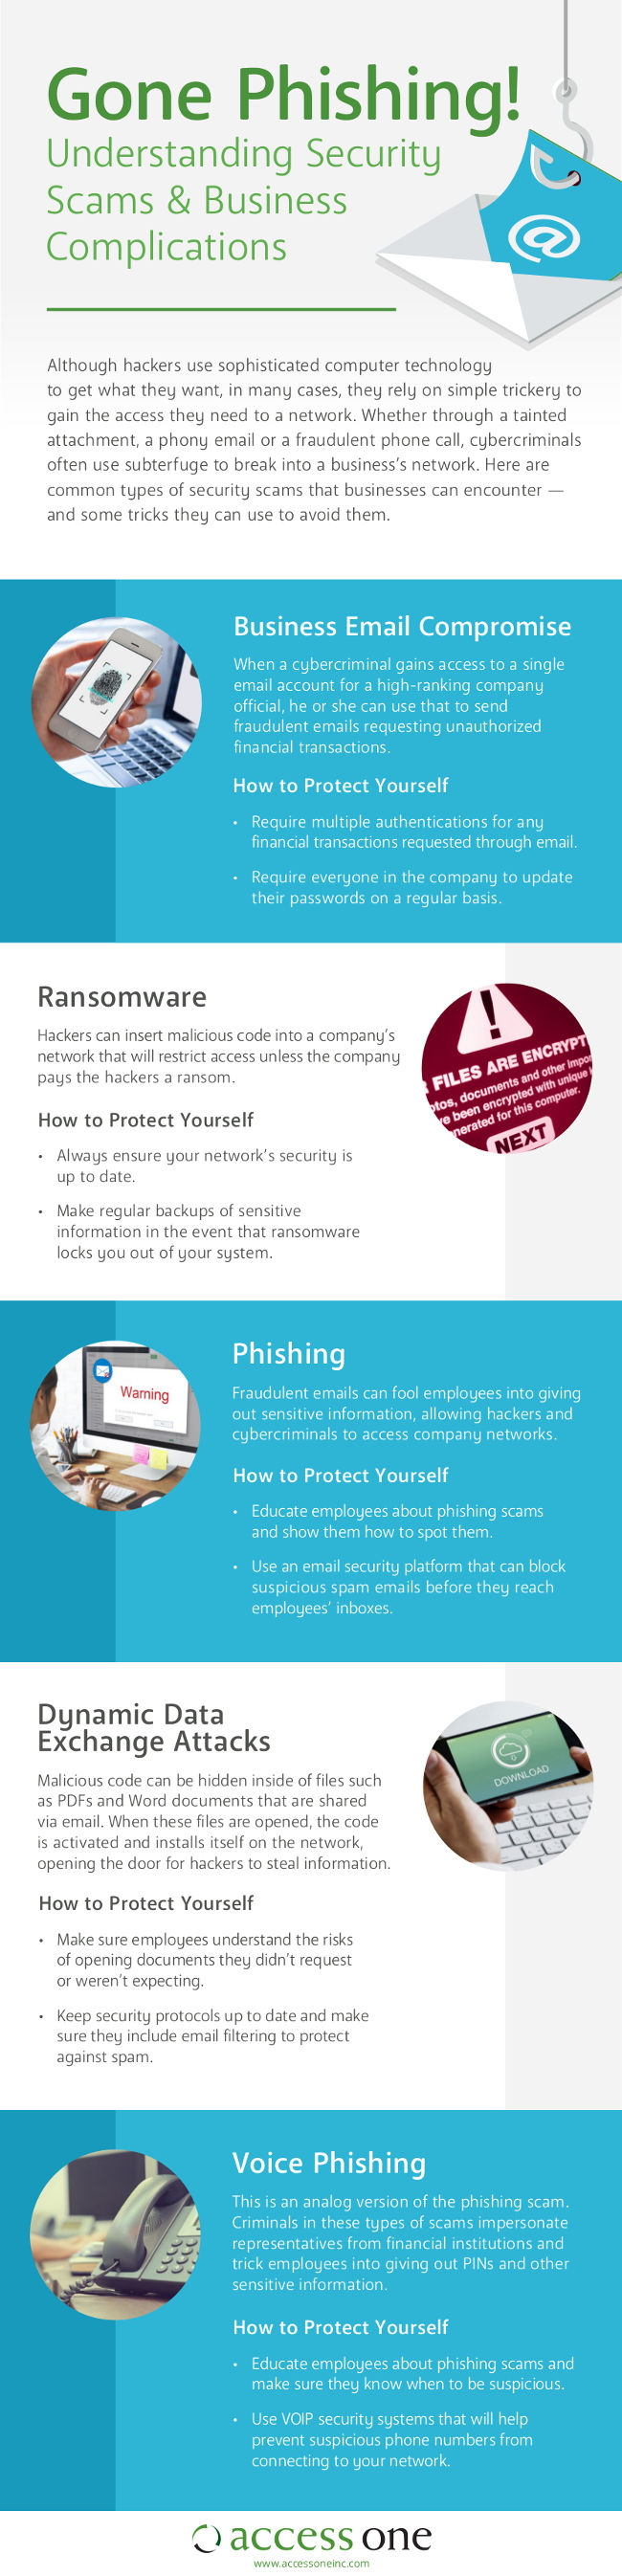 5 Security Scams You Need to be Looking Out For [Infographic]